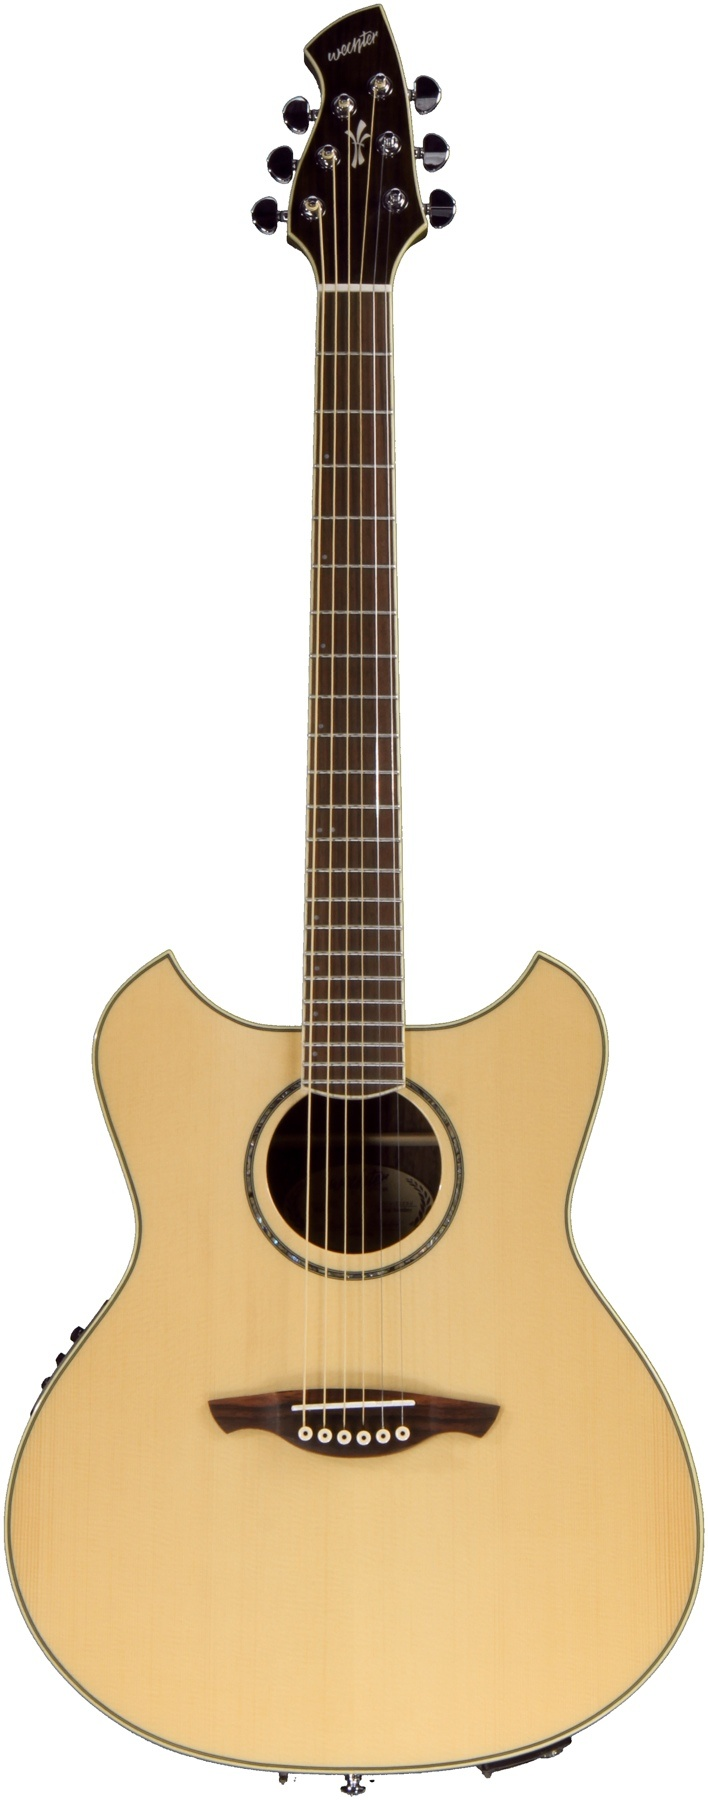 double cutaway acoustic awesome guitars pinterest. Black Bedroom Furniture Sets. Home Design Ideas